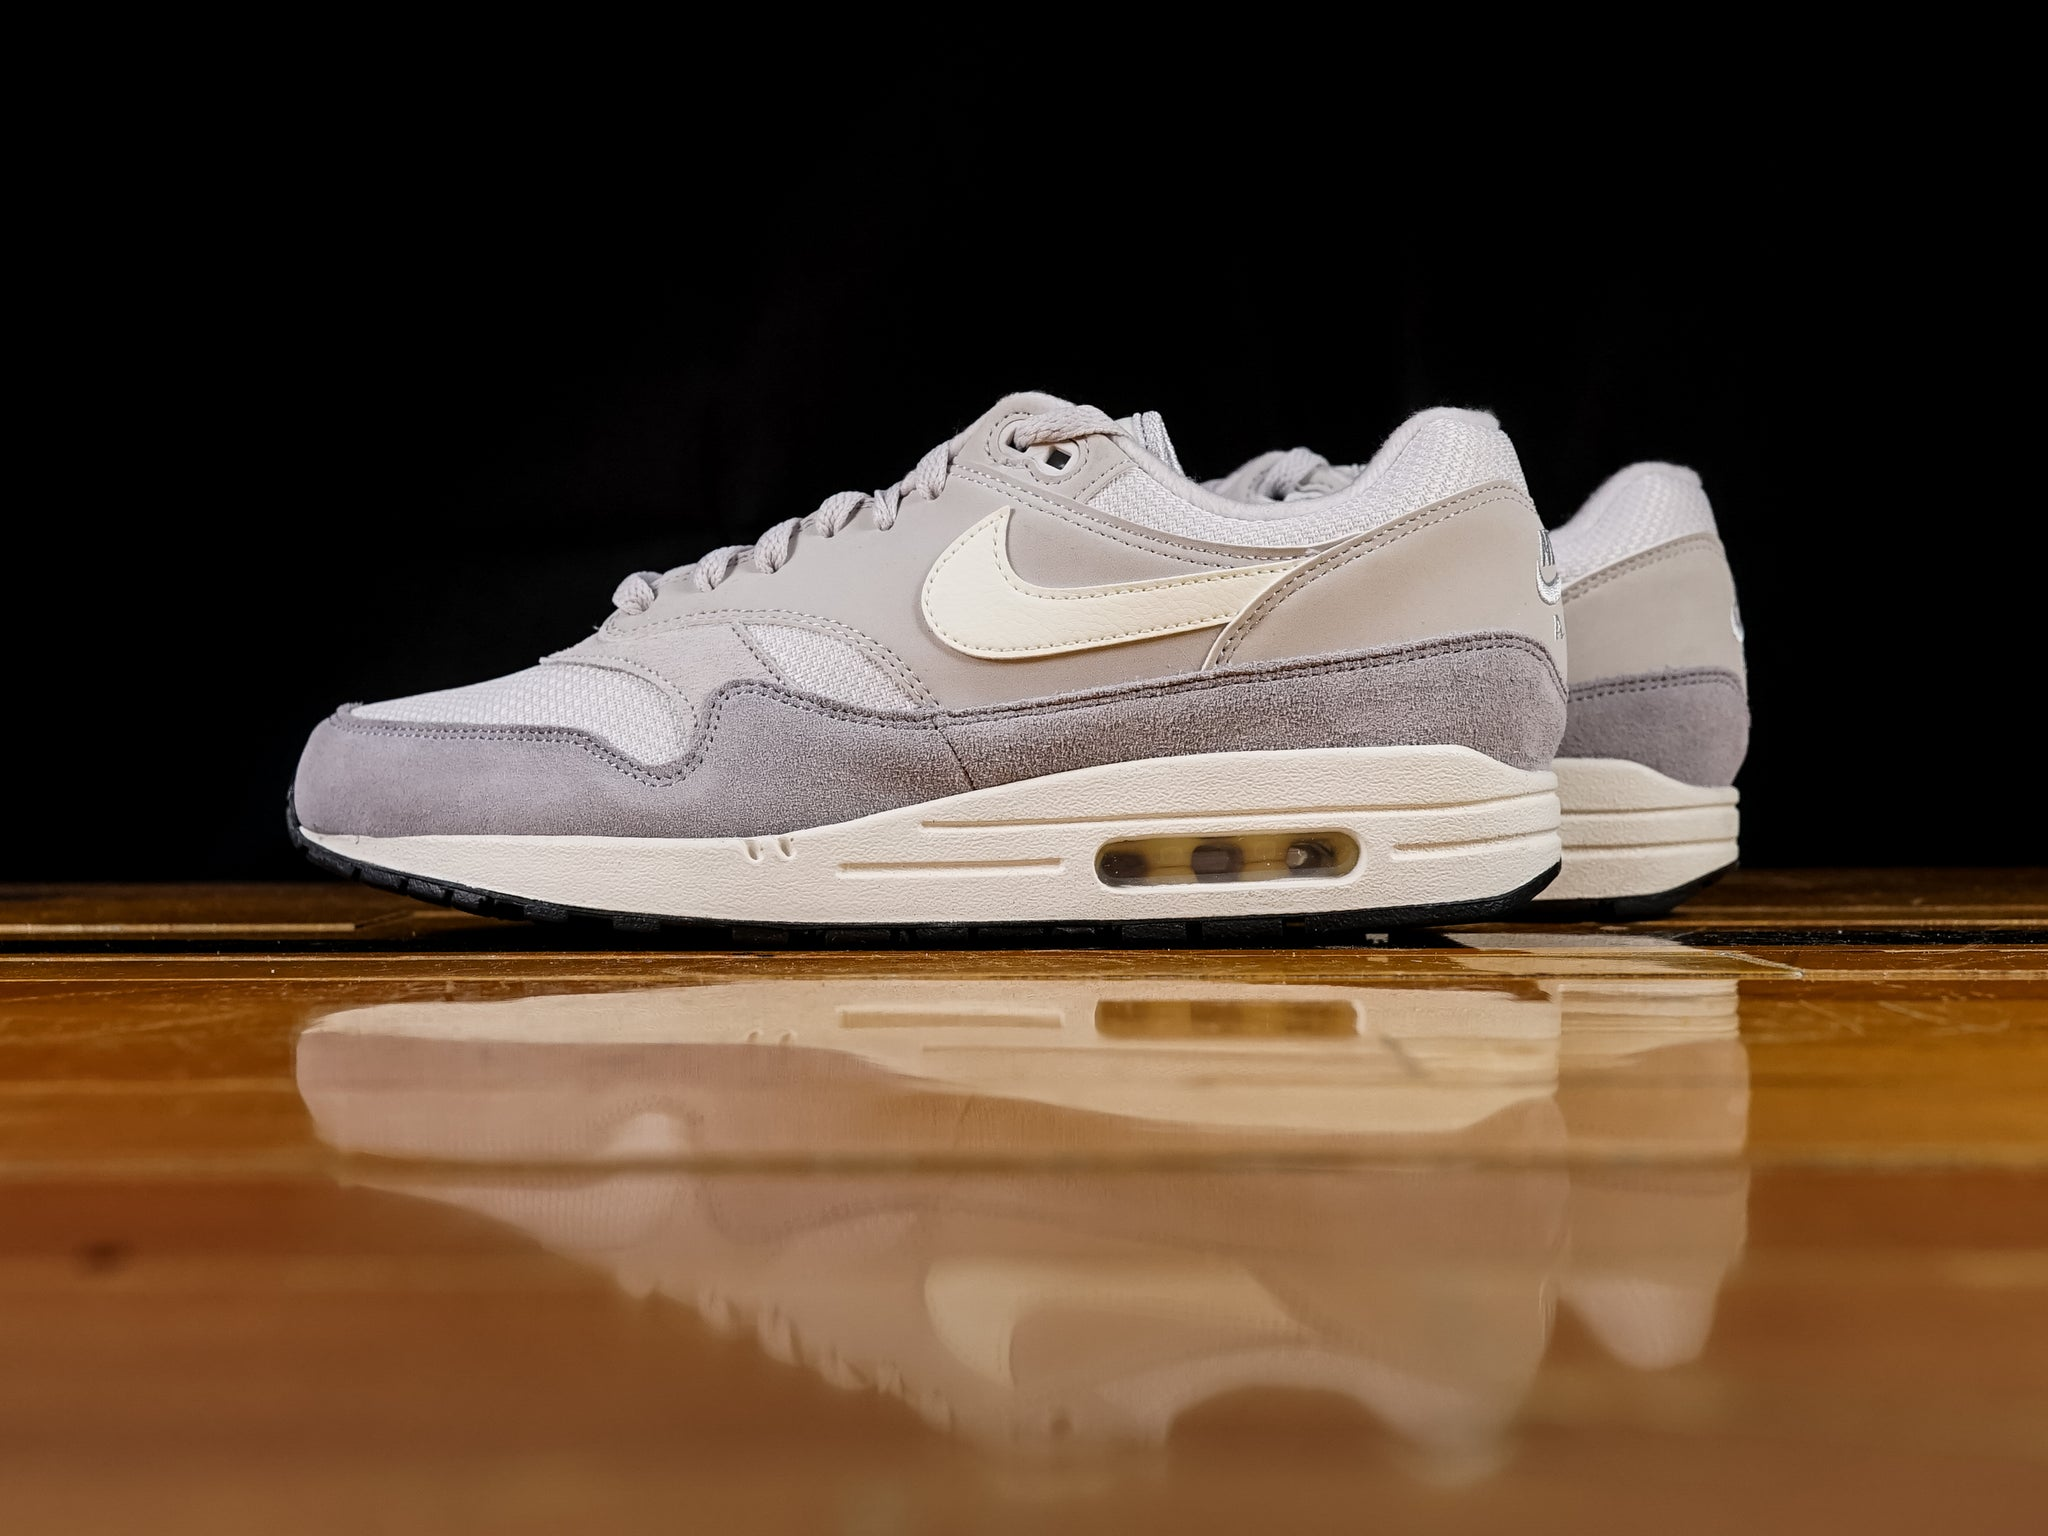 0a69826b698 Men's Nike Air Max 1 'Vast Grey' | AH8145-011 | Renarts